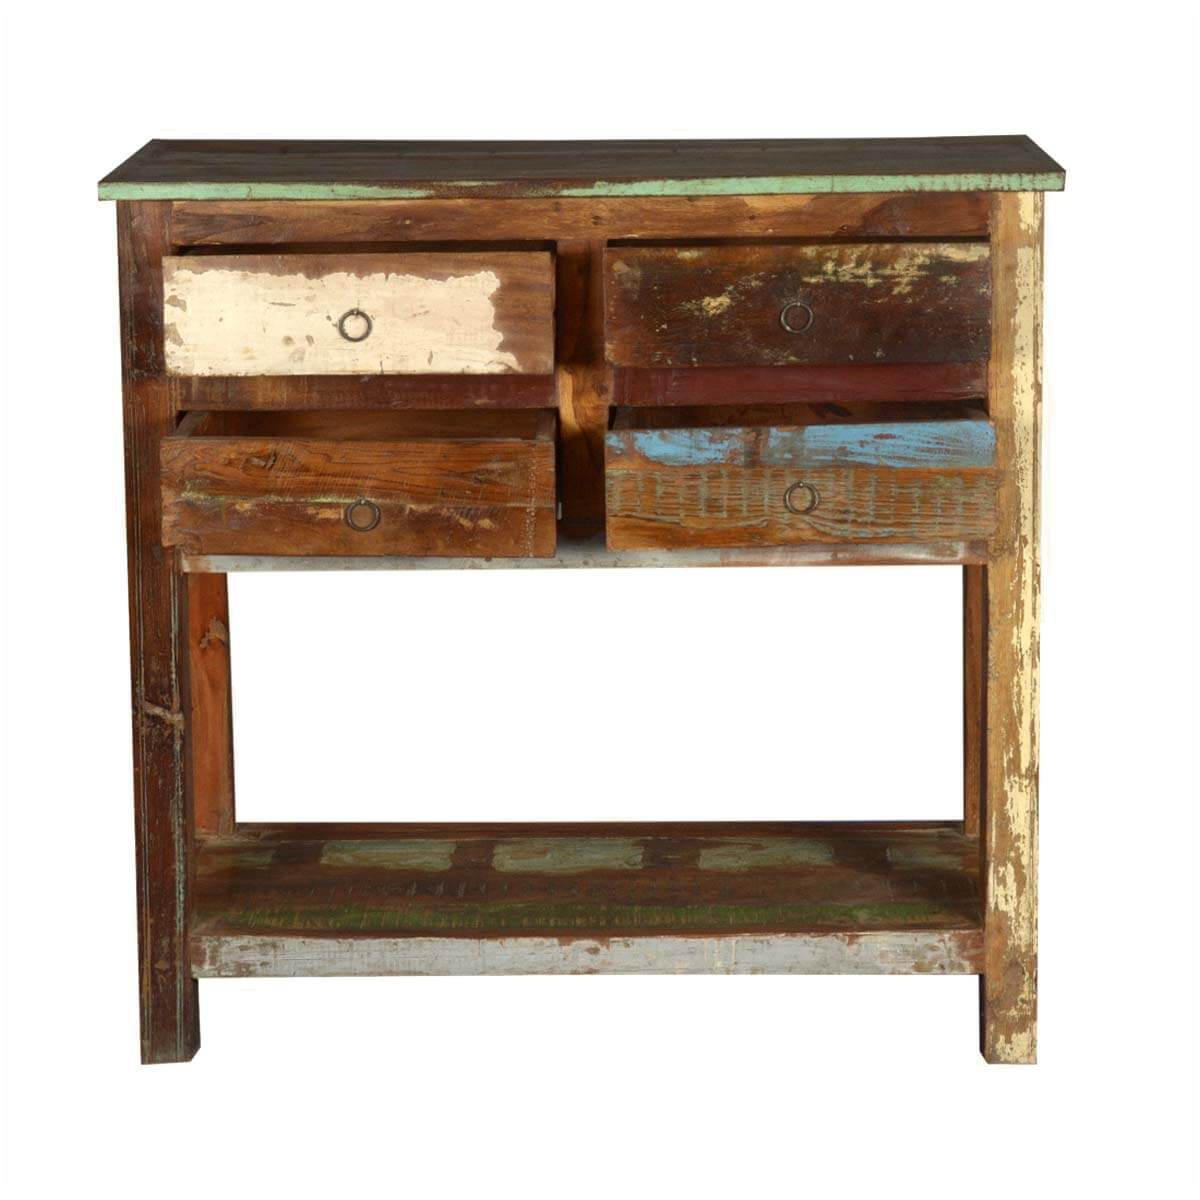 Marvelous photograph of  & Hall Tables 2 Tier Reclaimed Wood Console Table with 4 Drawers with #A68125 color and 1200x1200 pixels